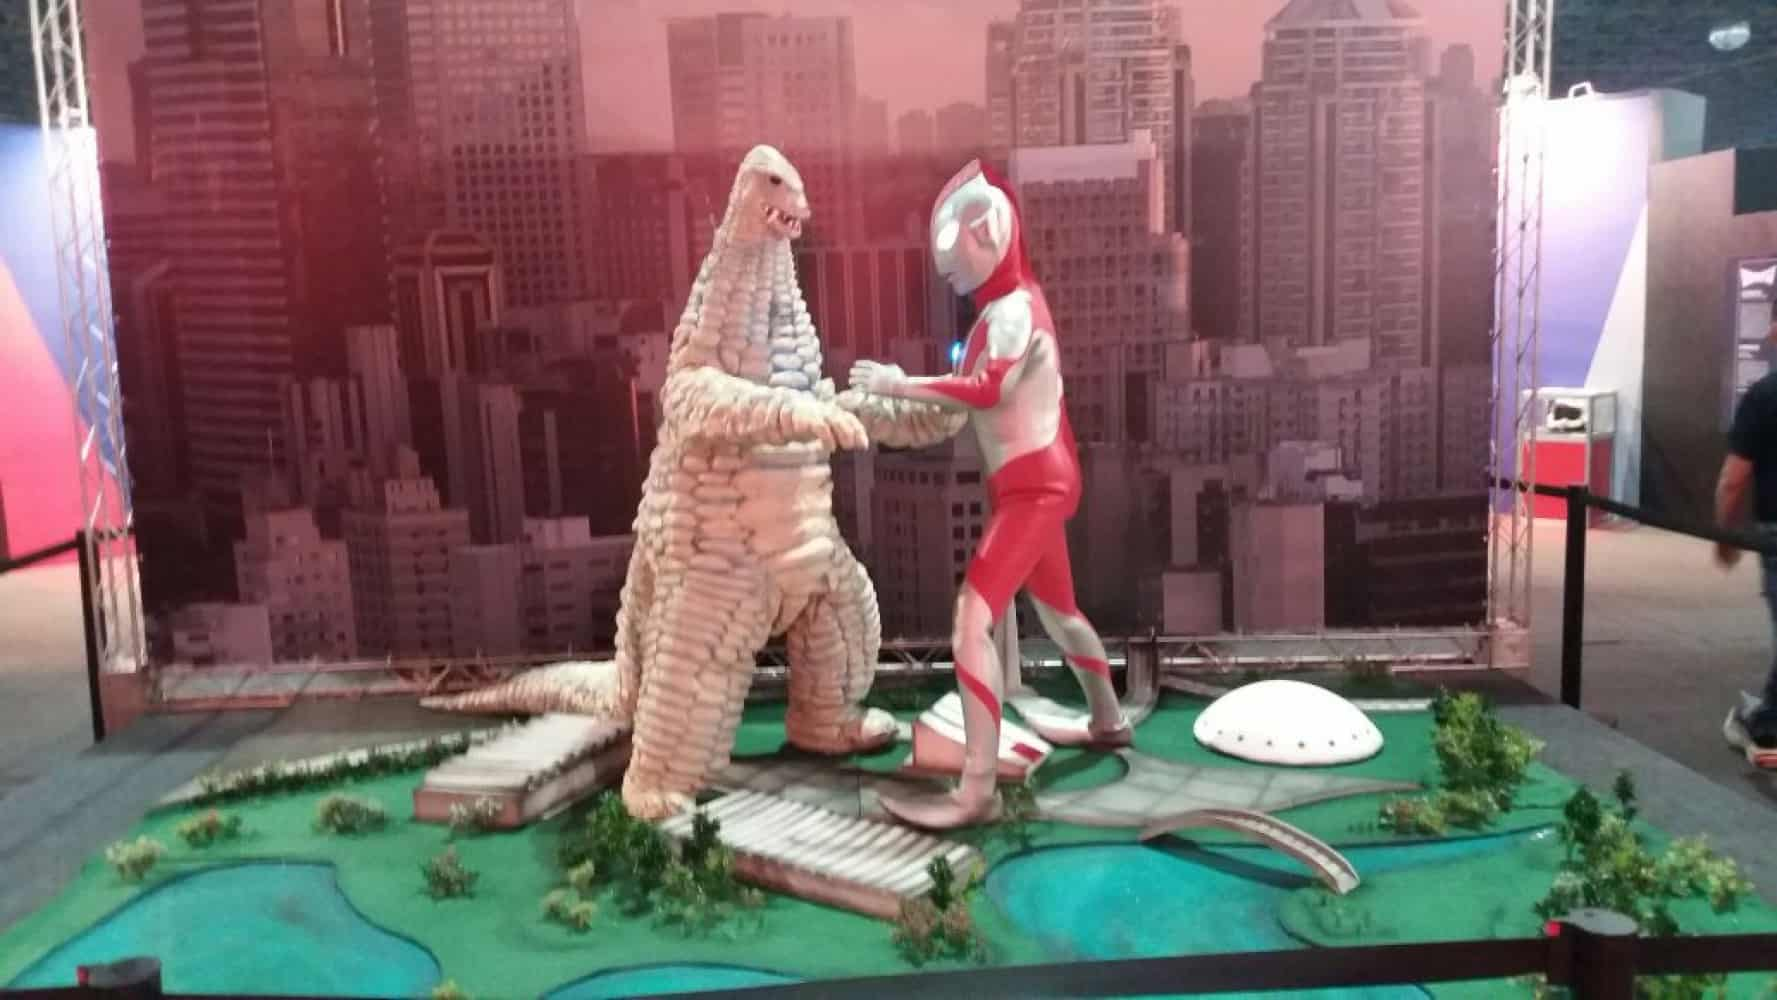 Museu do Ultraman